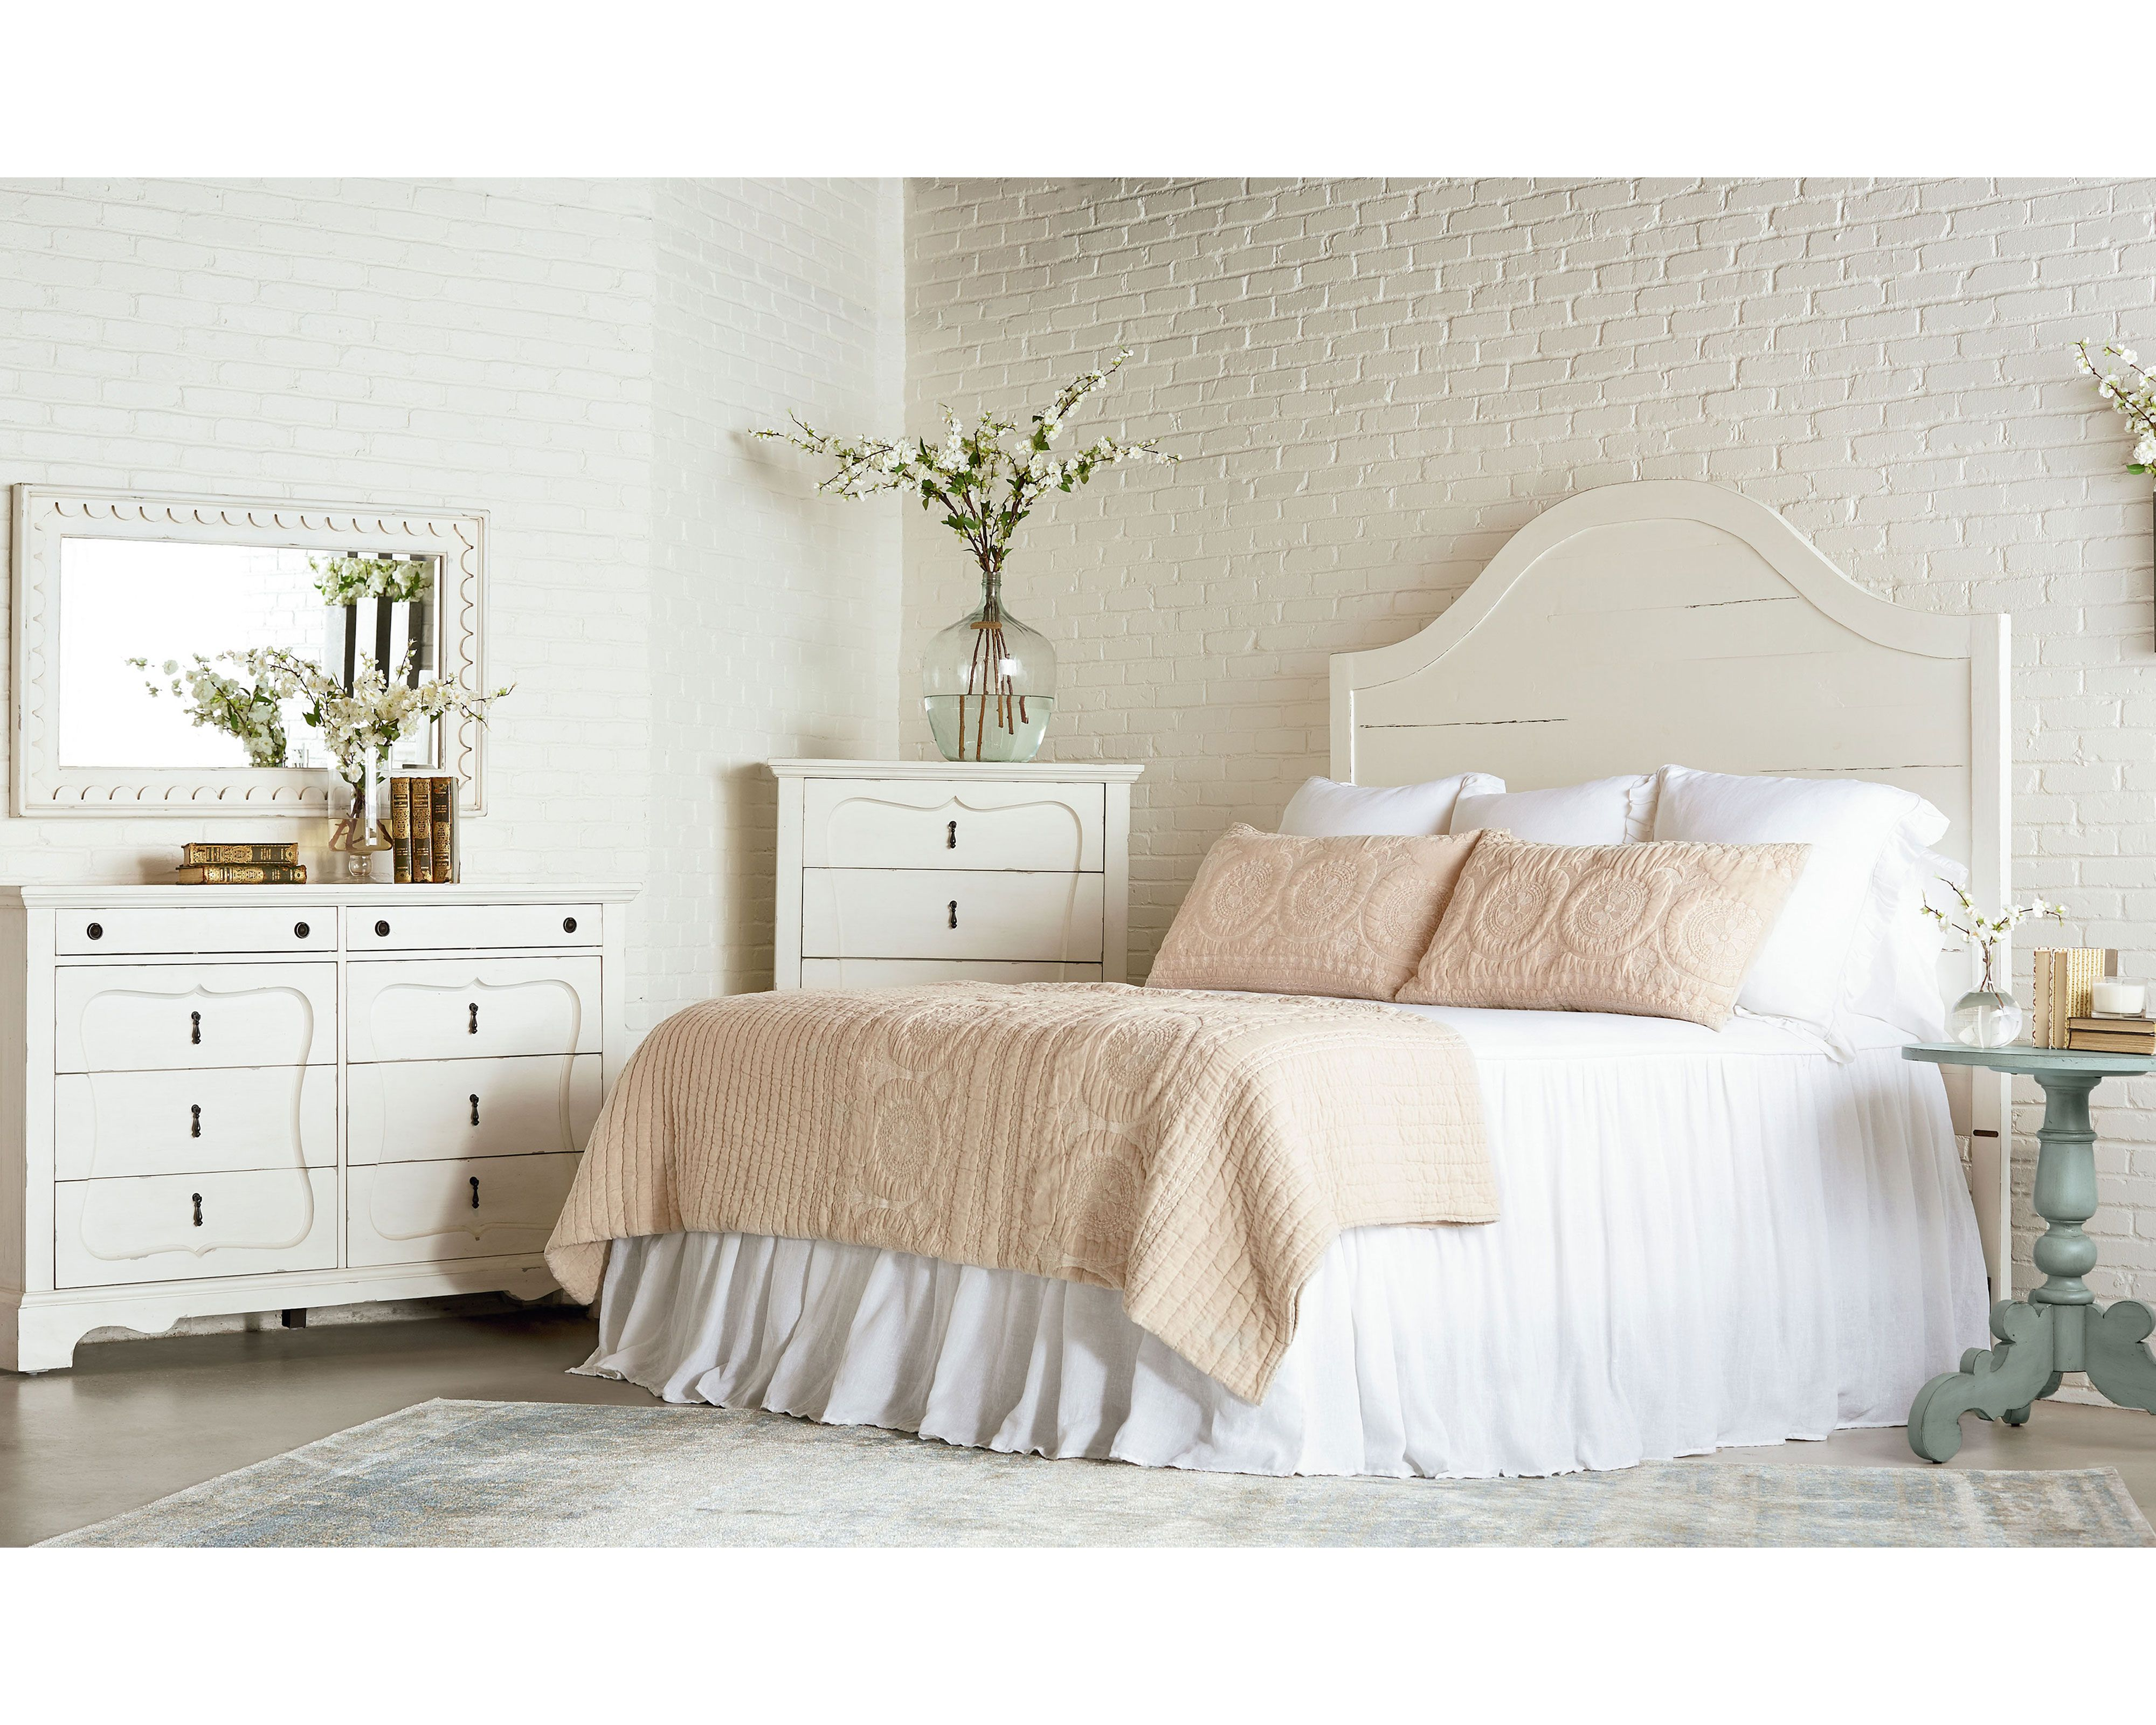 Magnolia Home French Inspired Bedroom now this one I could make